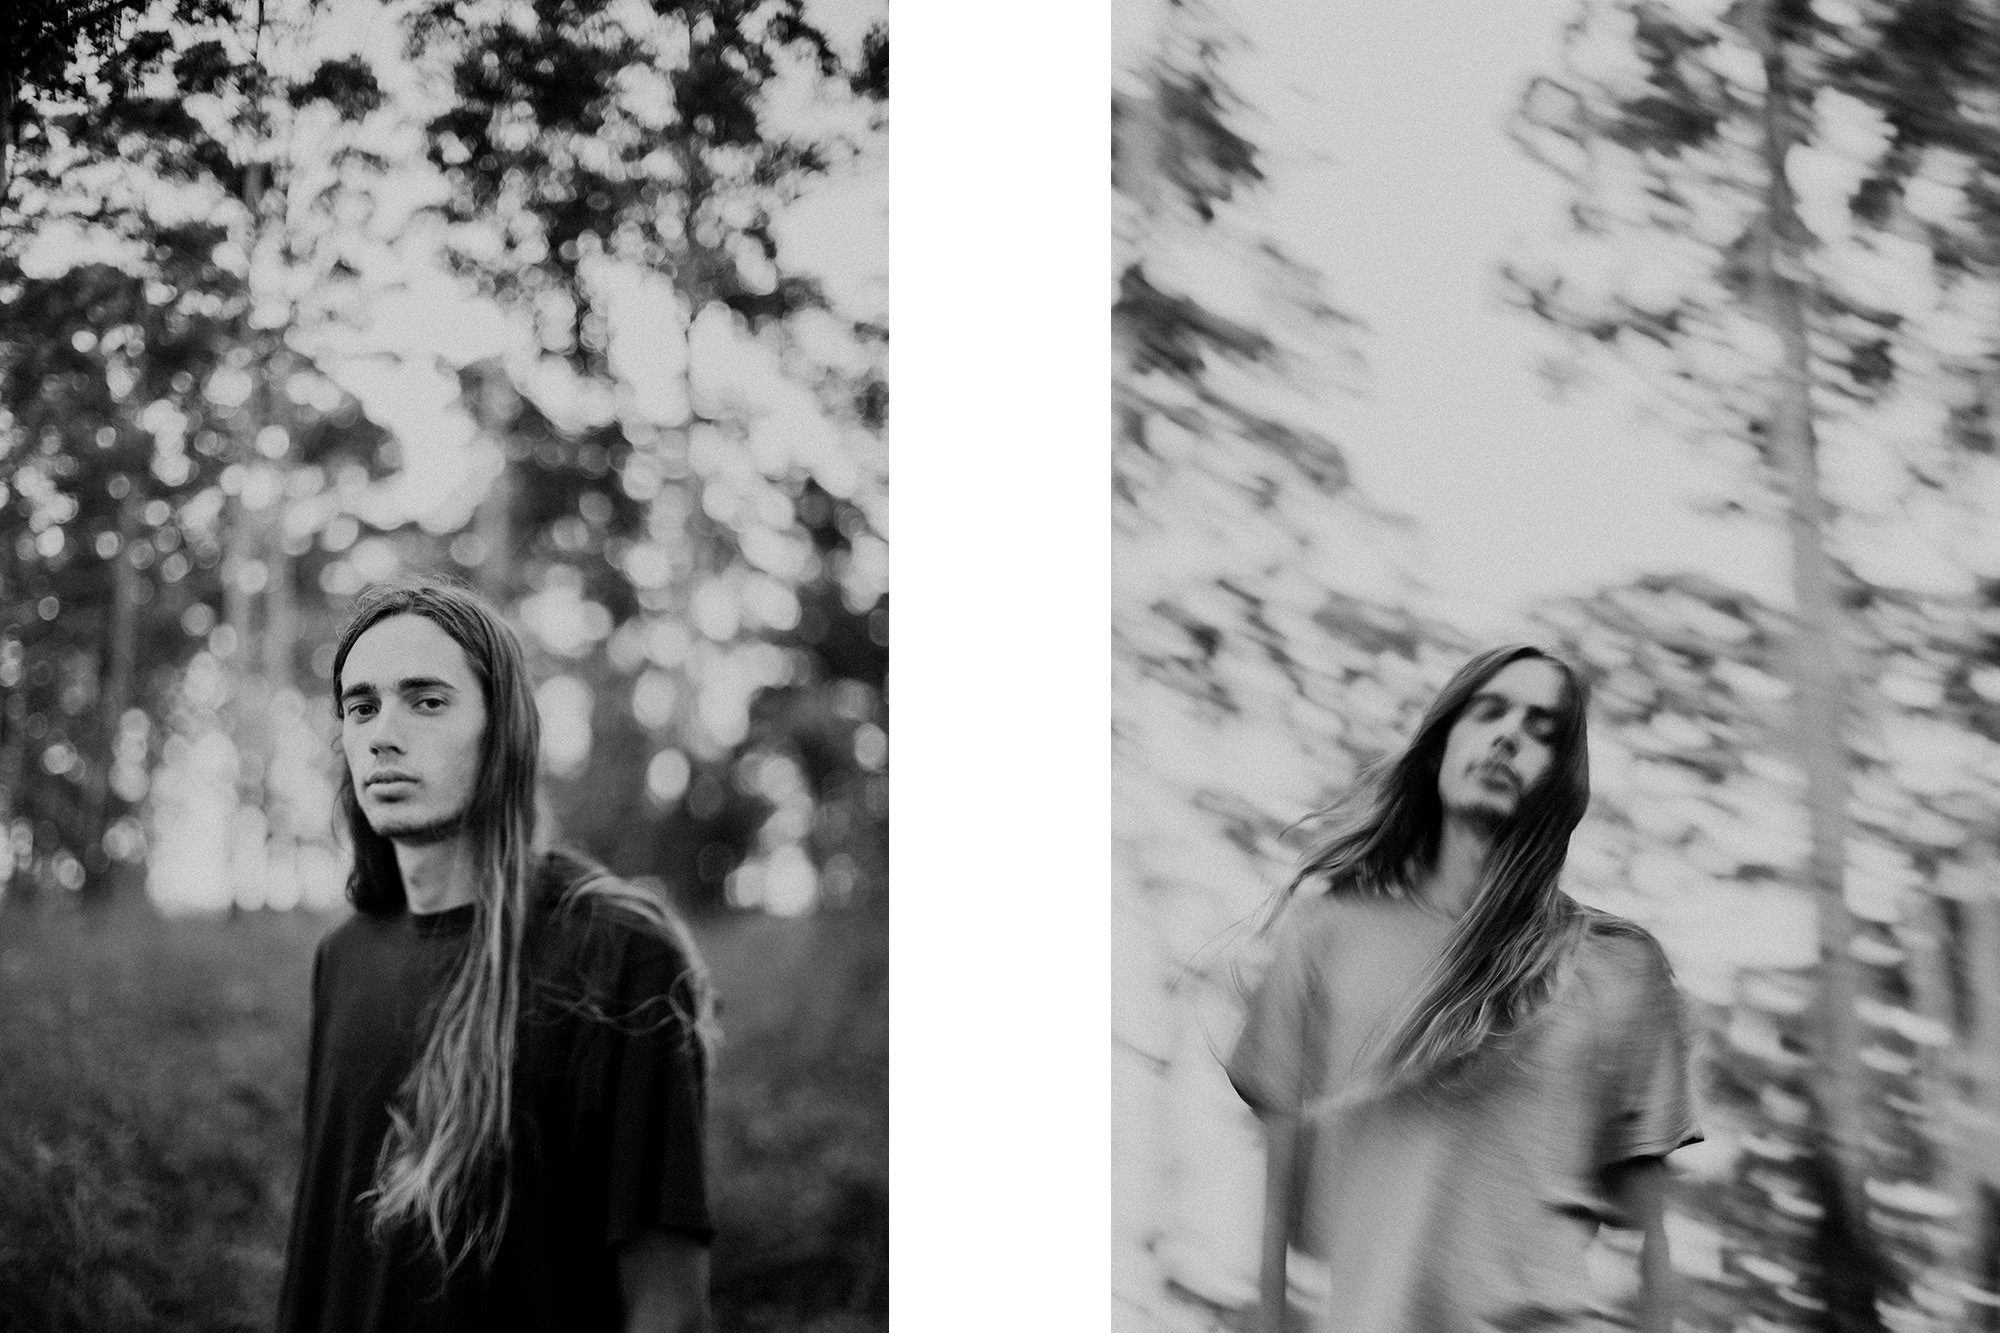 Two creative black and white portraits of man with long hair in forest